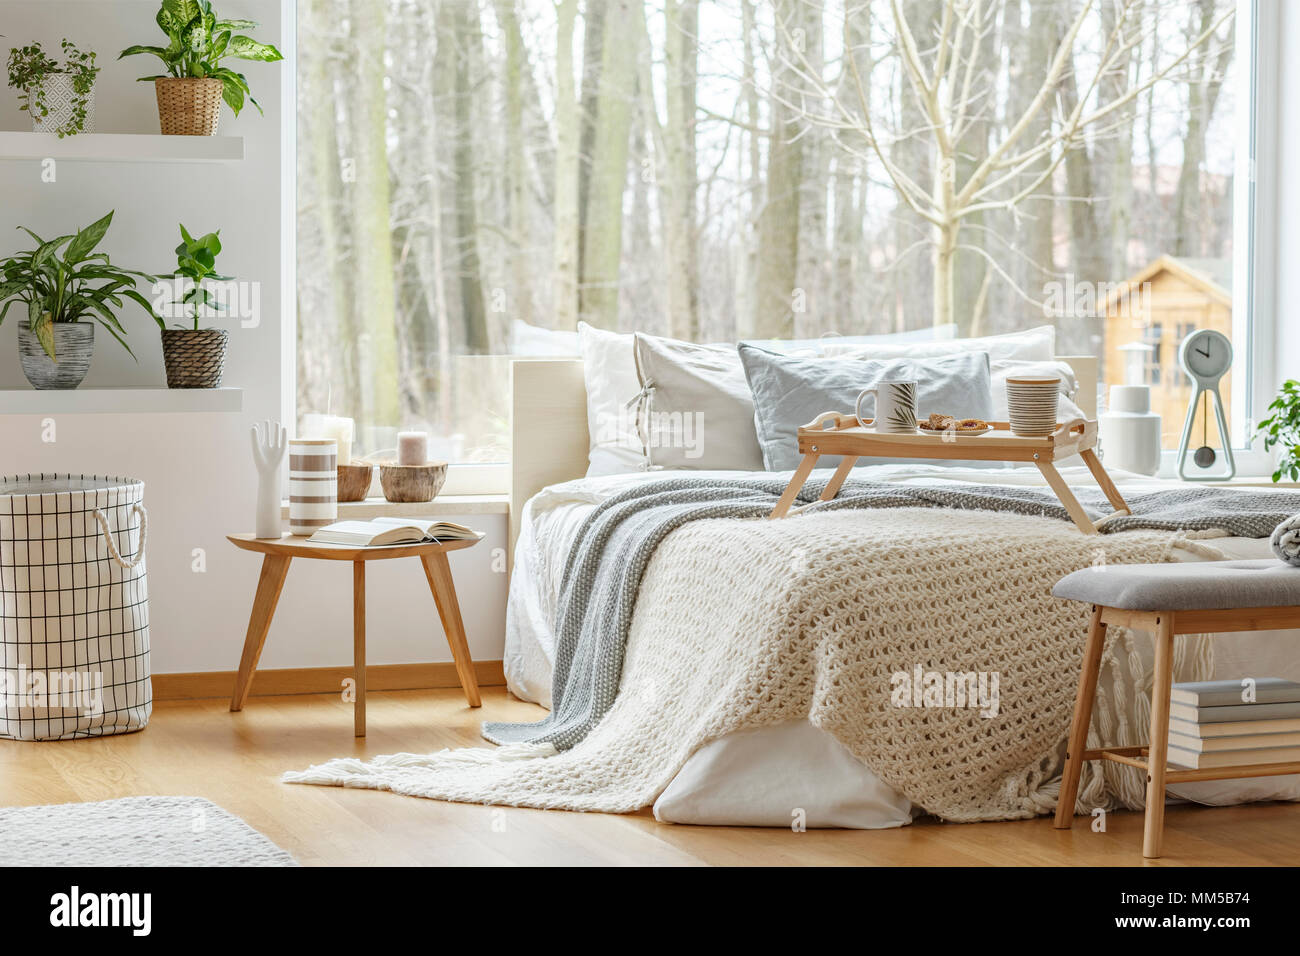 Book On Wooden Table Next To Bed In Minimal Bedroom Interior With Plants  And View On Forest